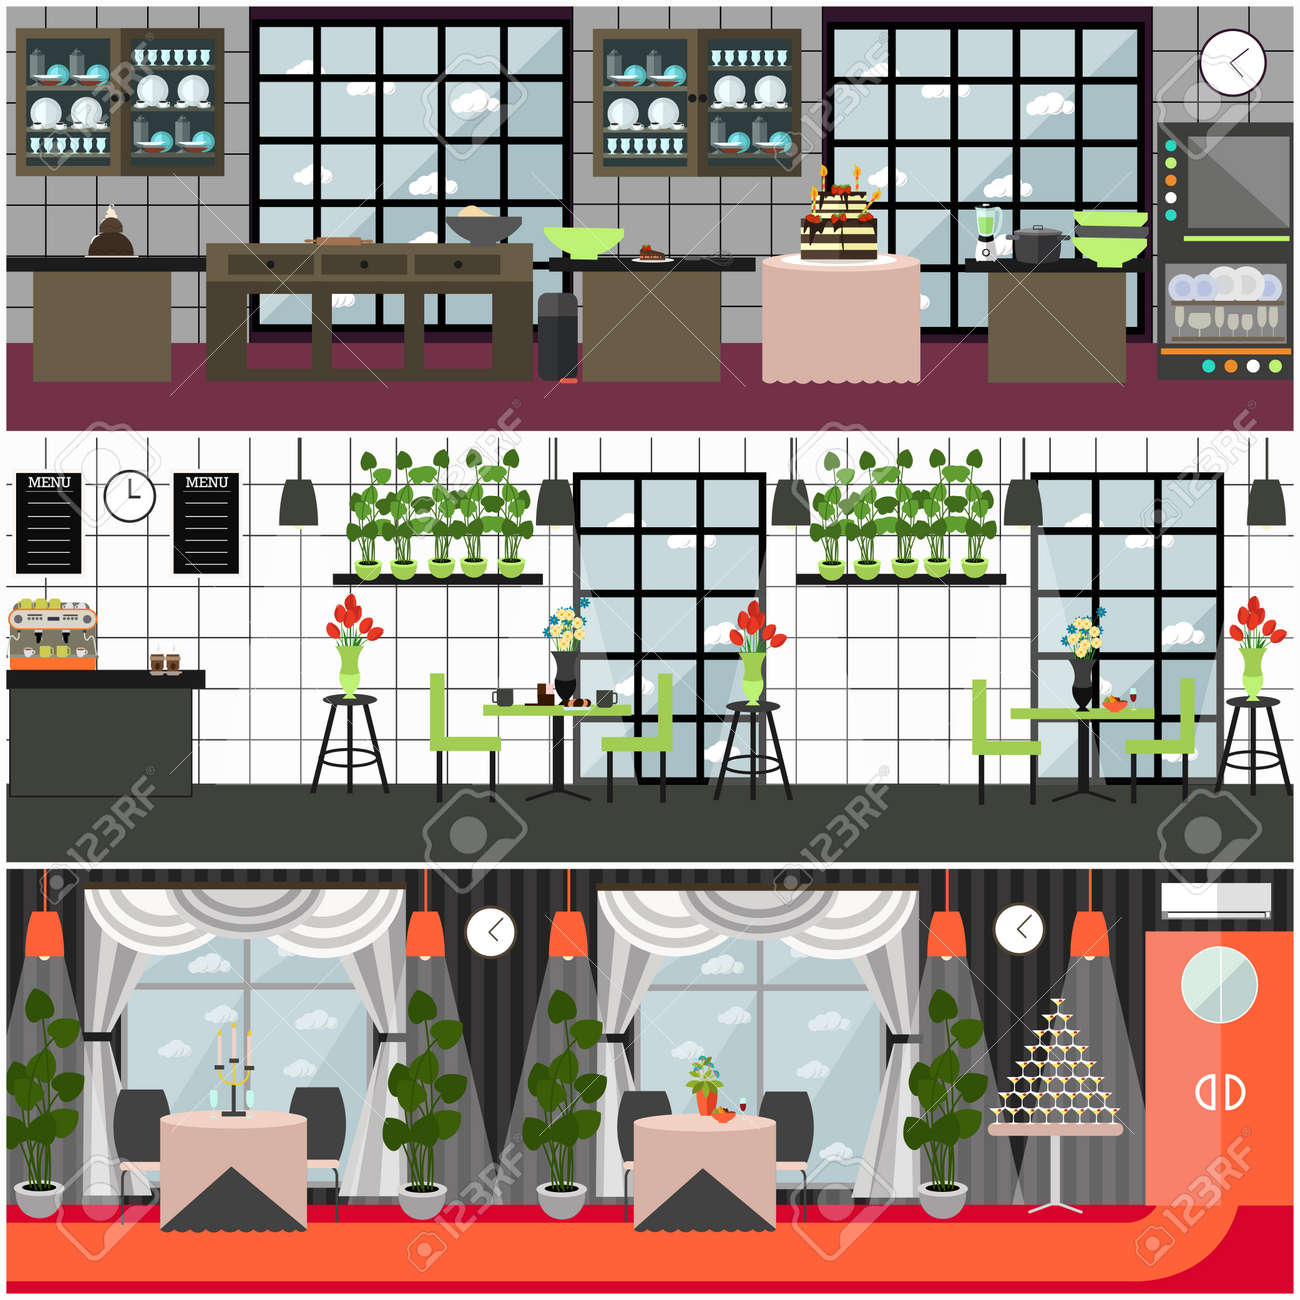 Vector vector restaurant and cafe interior set with kitchen banquet hall with furniture and decorations flat style design illustration